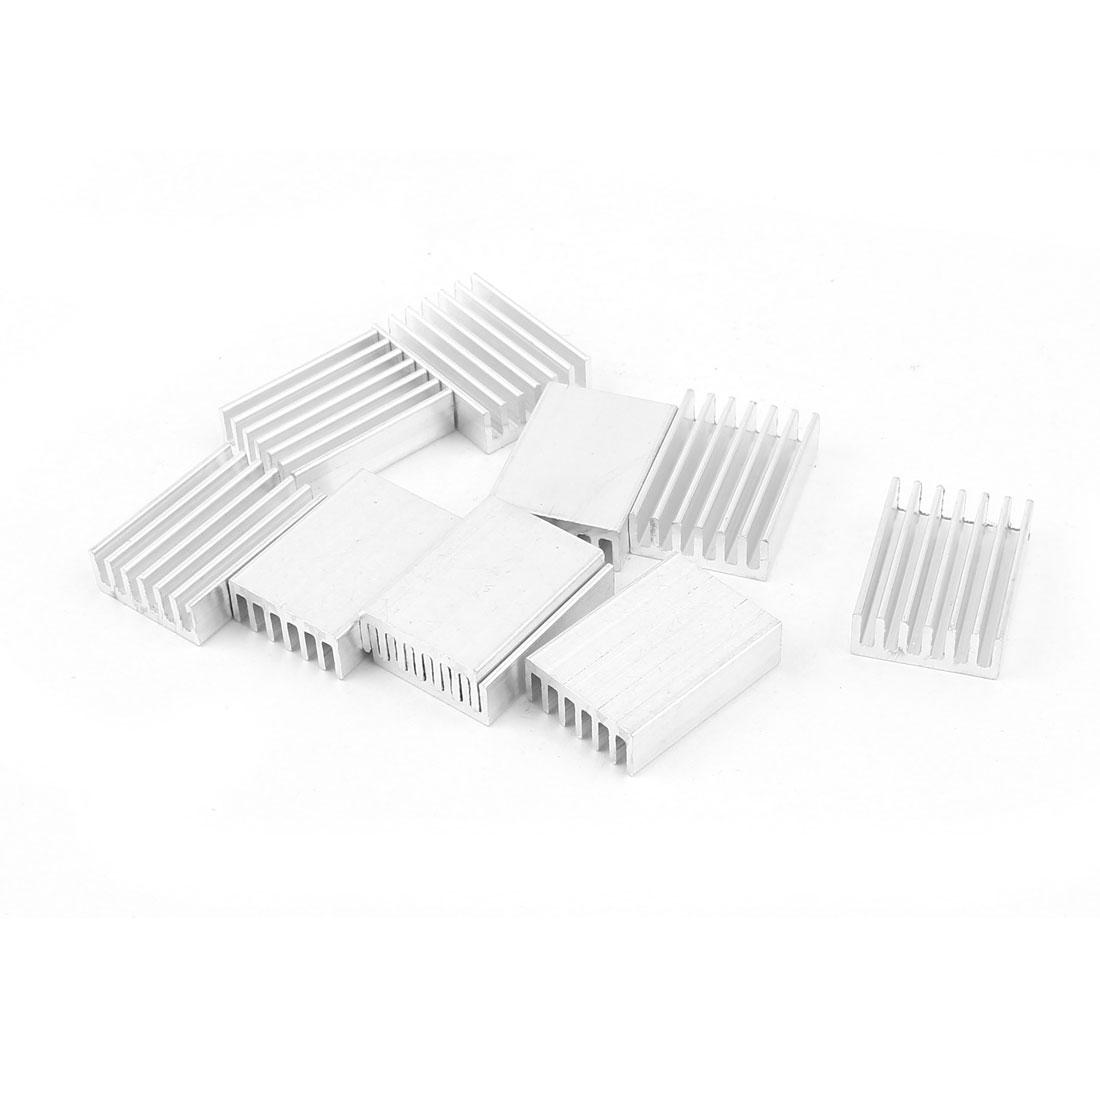 10 Pcs Silver Tone Aluminum Radiator Heat Sink Heatsink 20x14x6mm